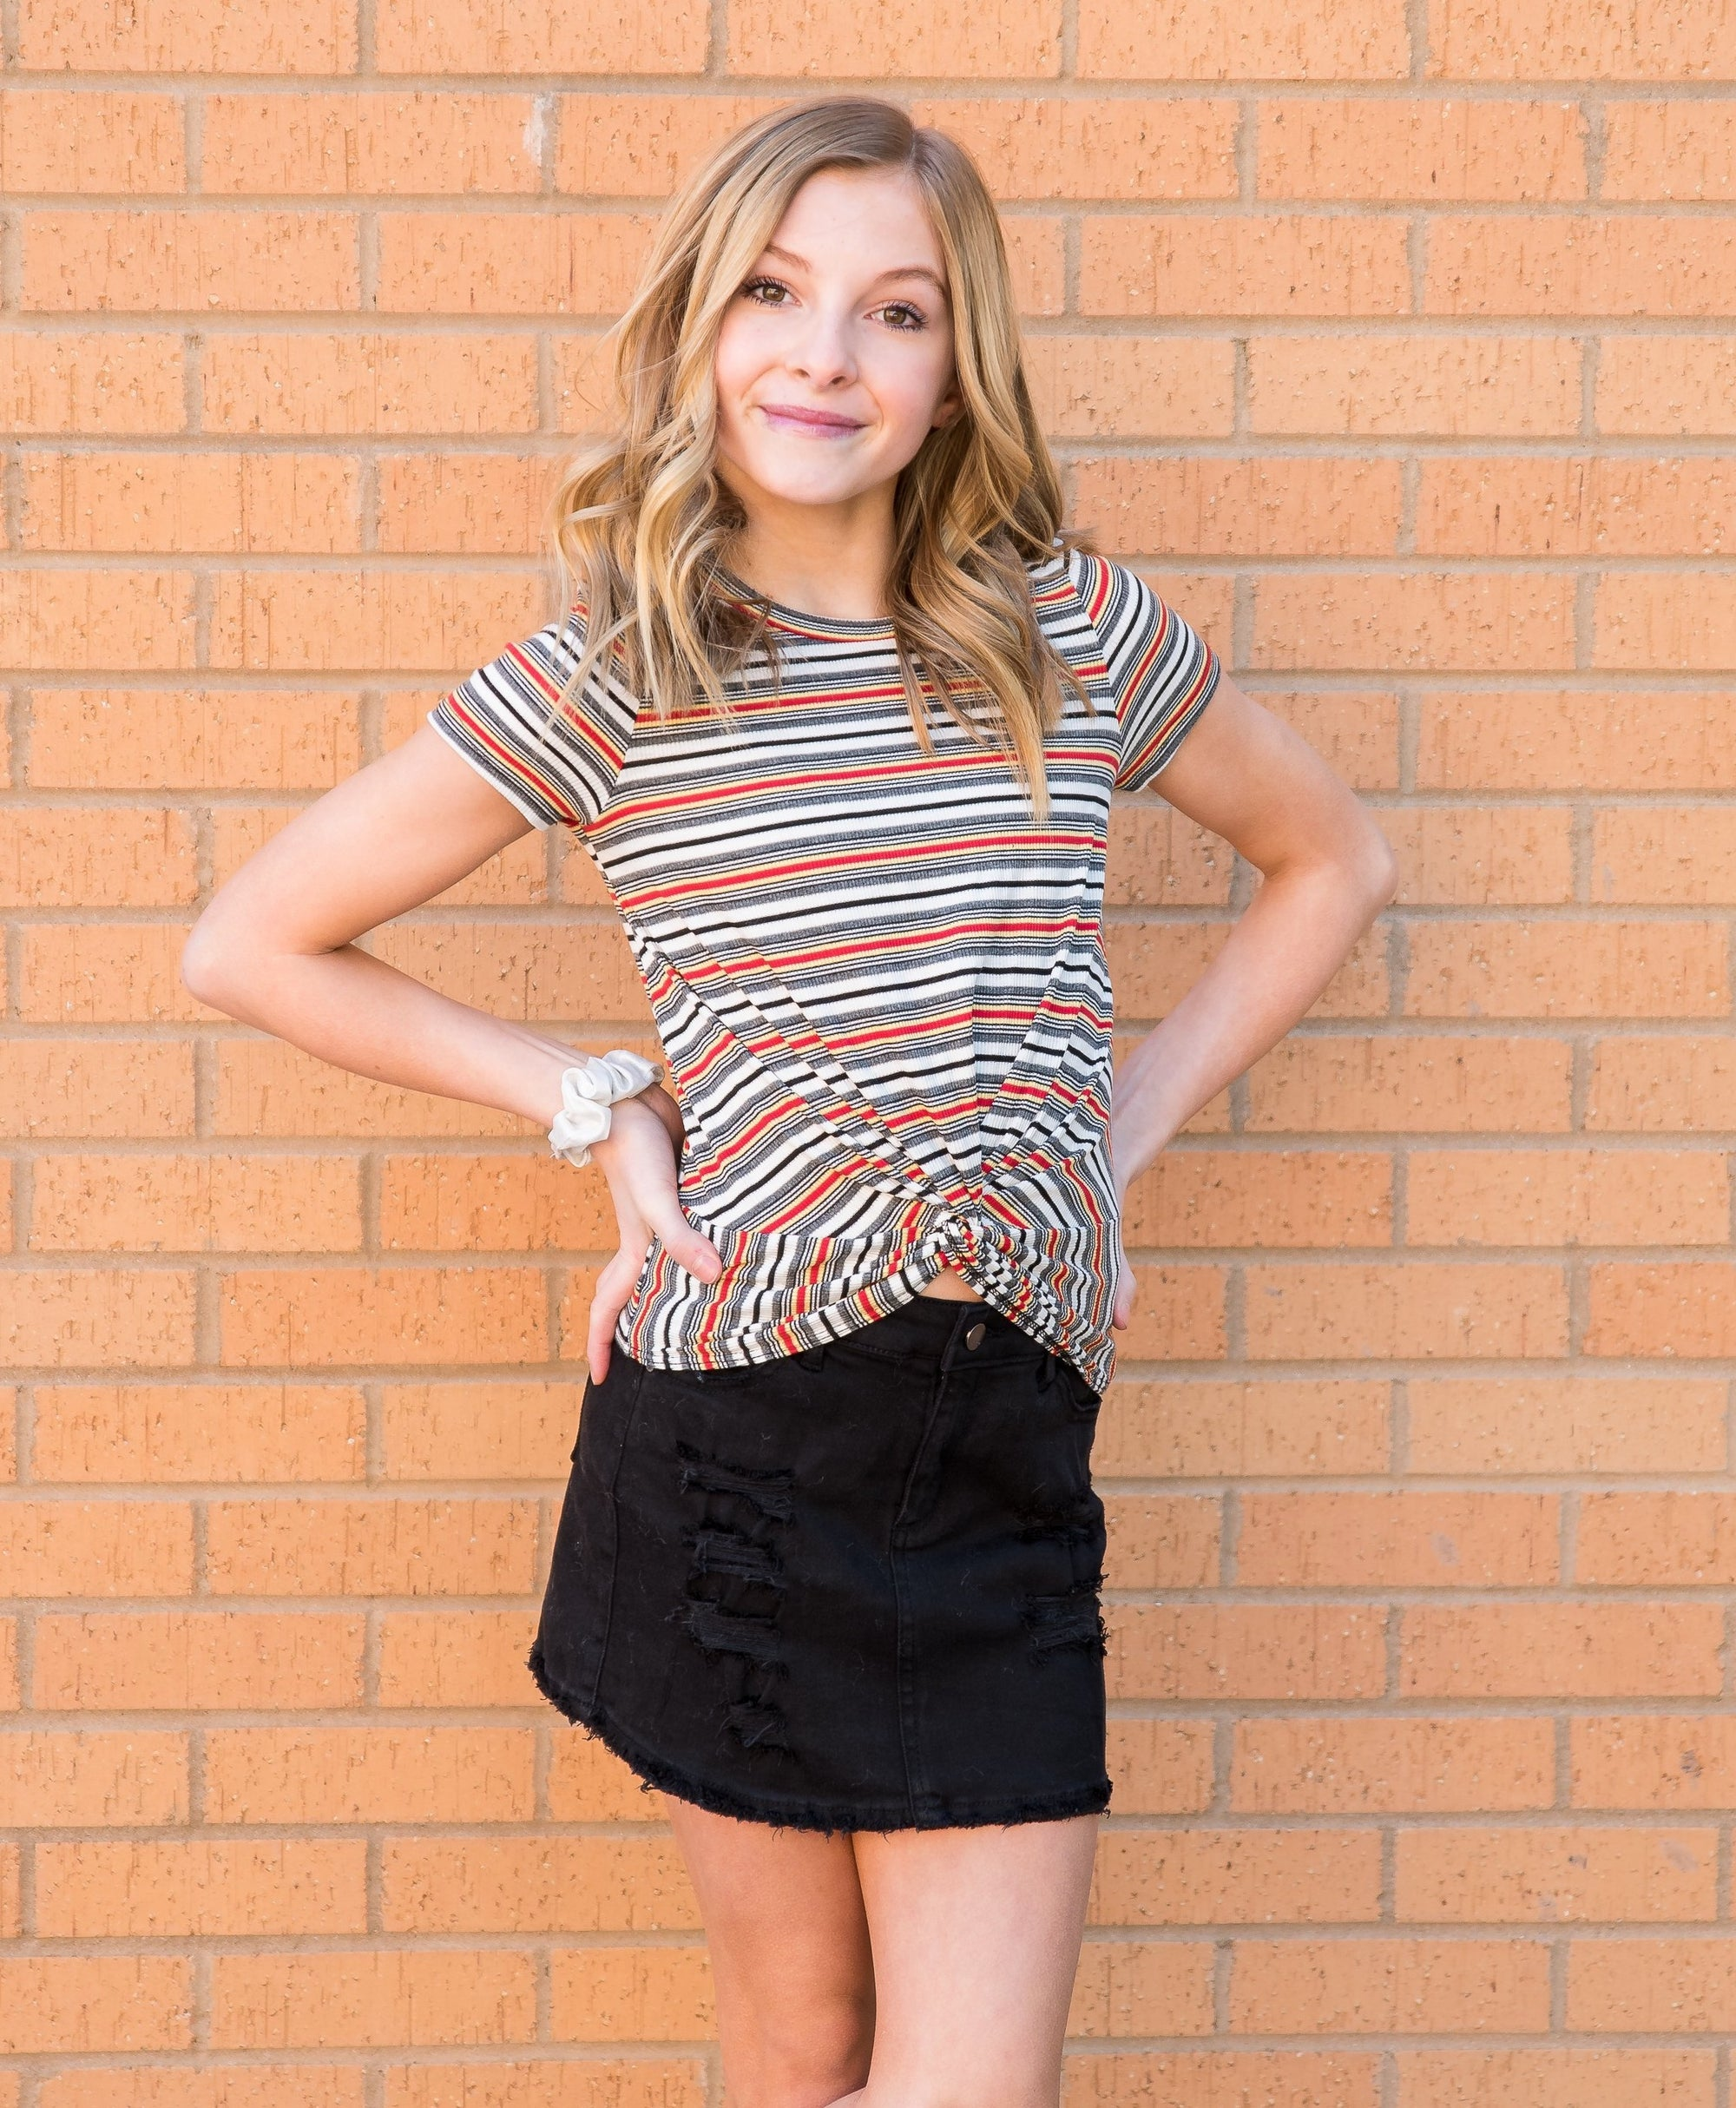 Tractr Distressed Black Mini Skirt for Girls - Duckthreads